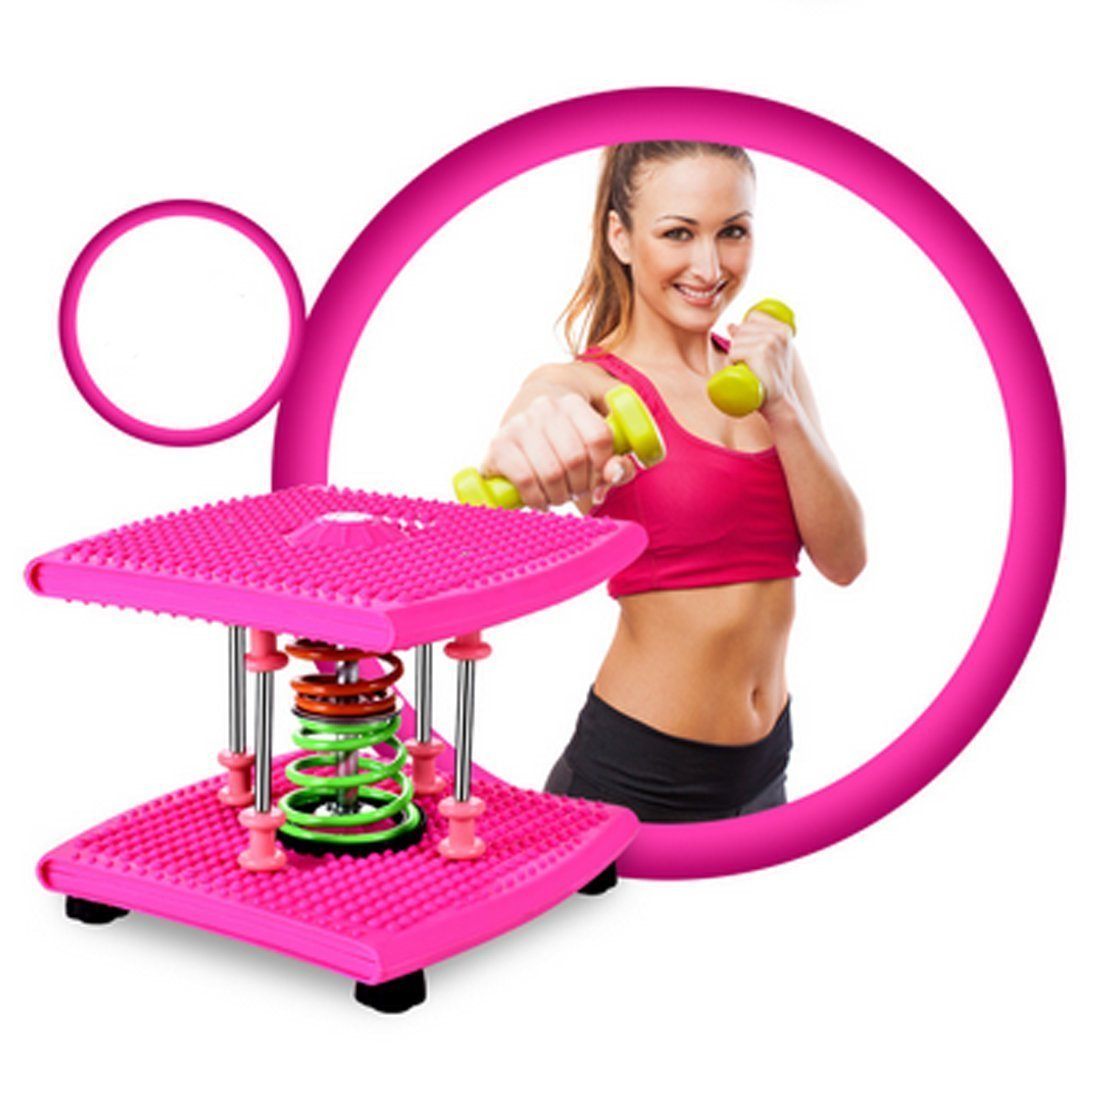 VIAHART Aerobic Exercise Fitness Equipment 4